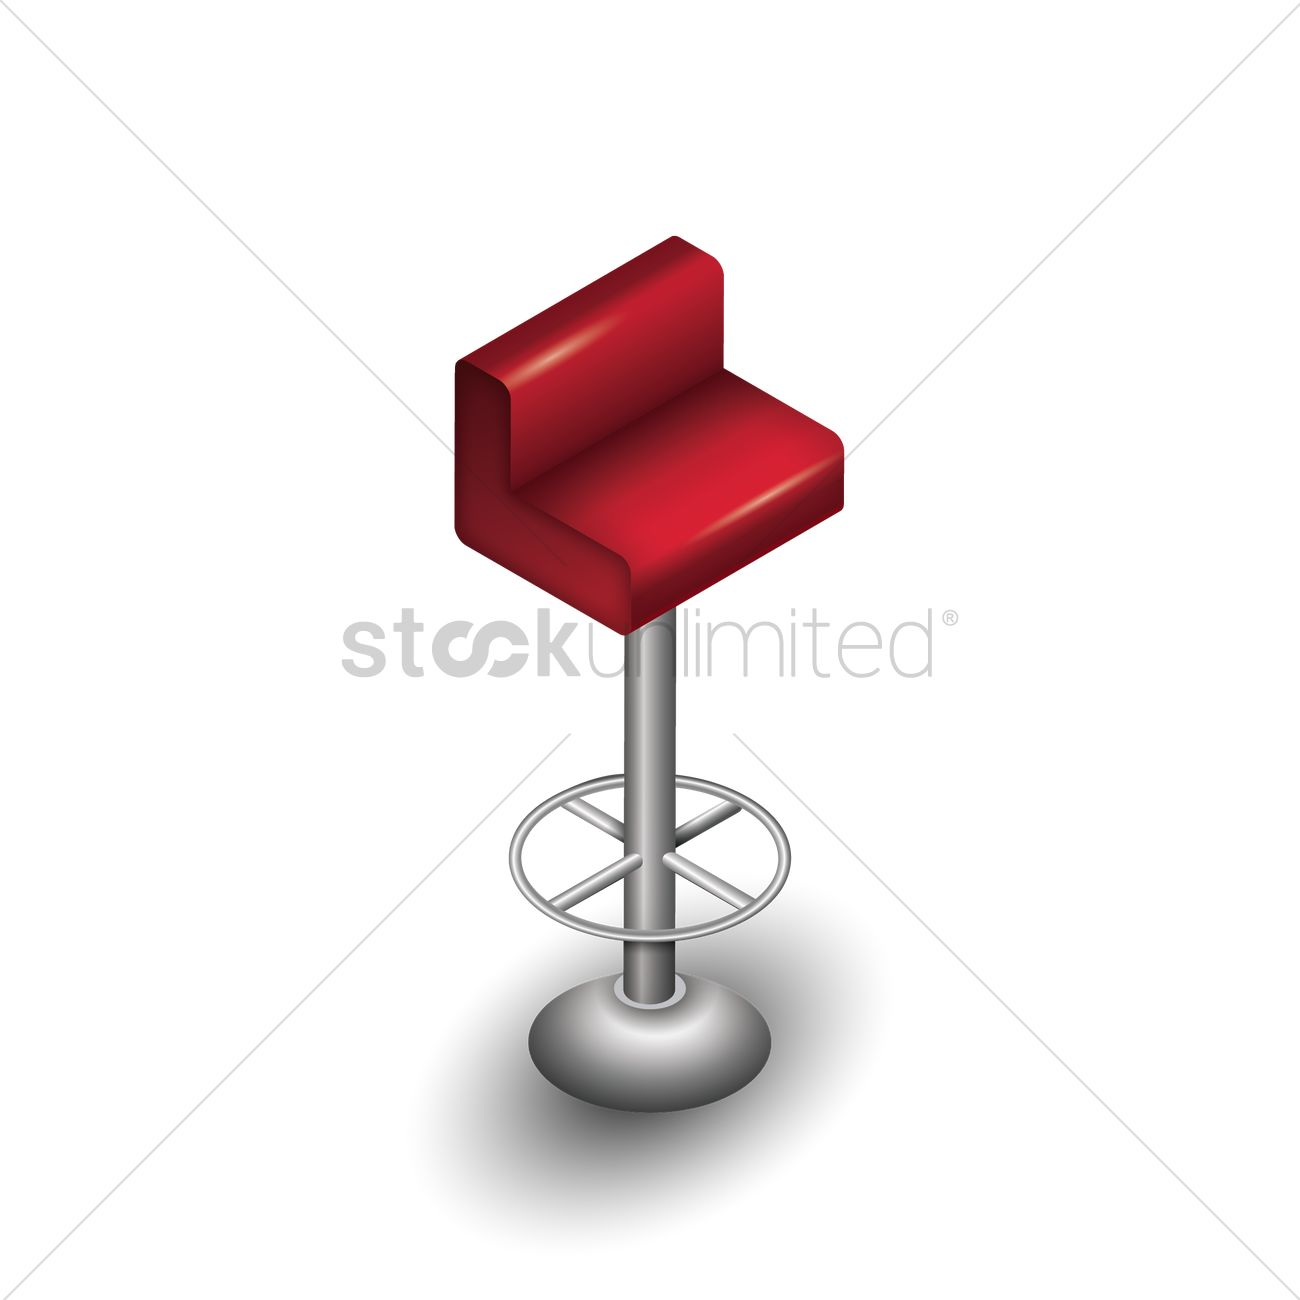 Bar stool Vector Image 1573105 StockUnlimited : bar stool1573105 from stockunlimited.com size 1300 x 1300 jpeg 47kB